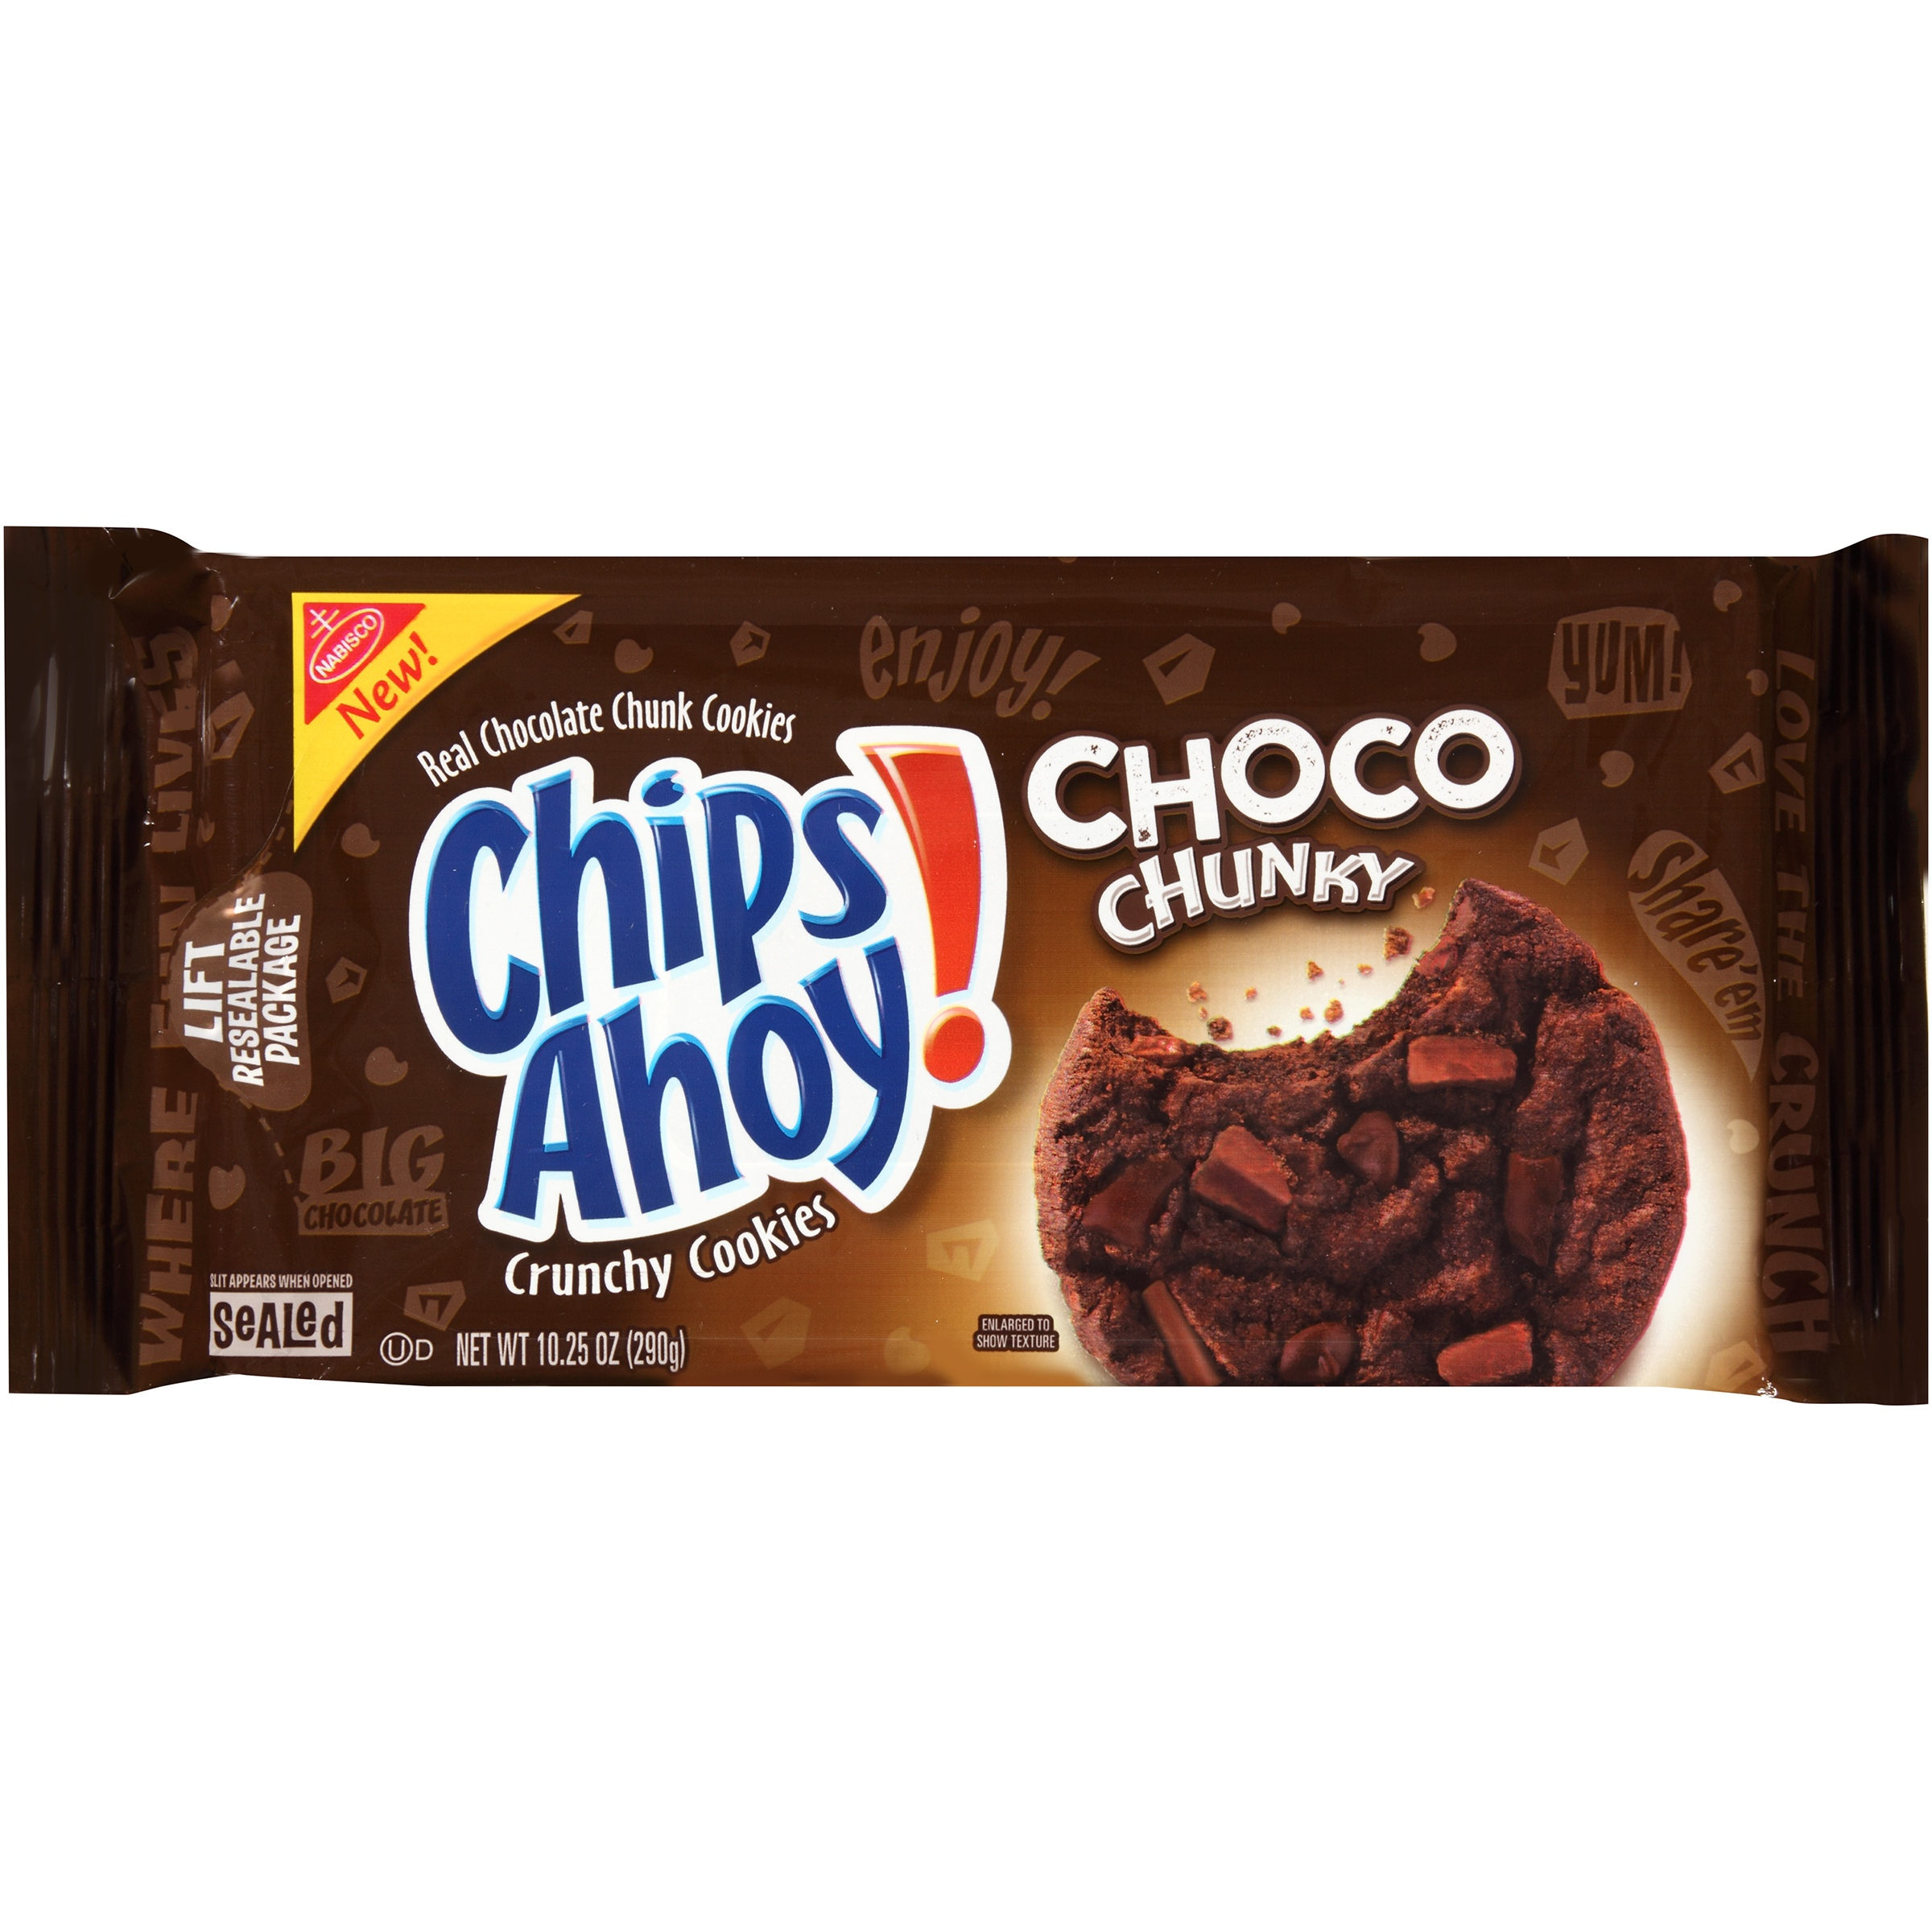 Nabisco Chips Ahoy! Choco Chunky Chocolate Chunk Cookies, 10.25 oz